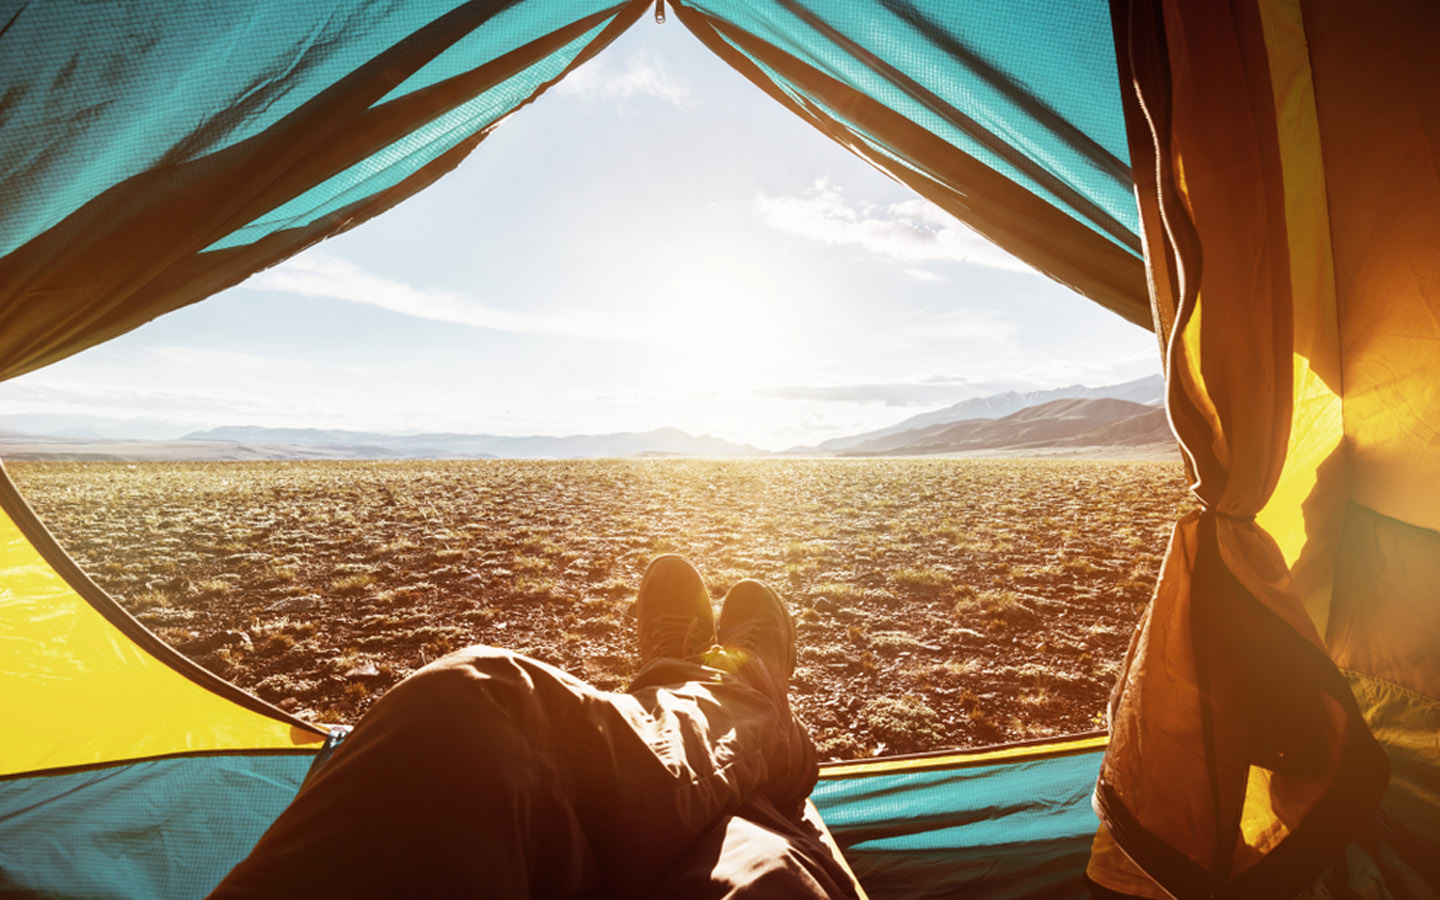 setting up a tent in a desert in the UAE